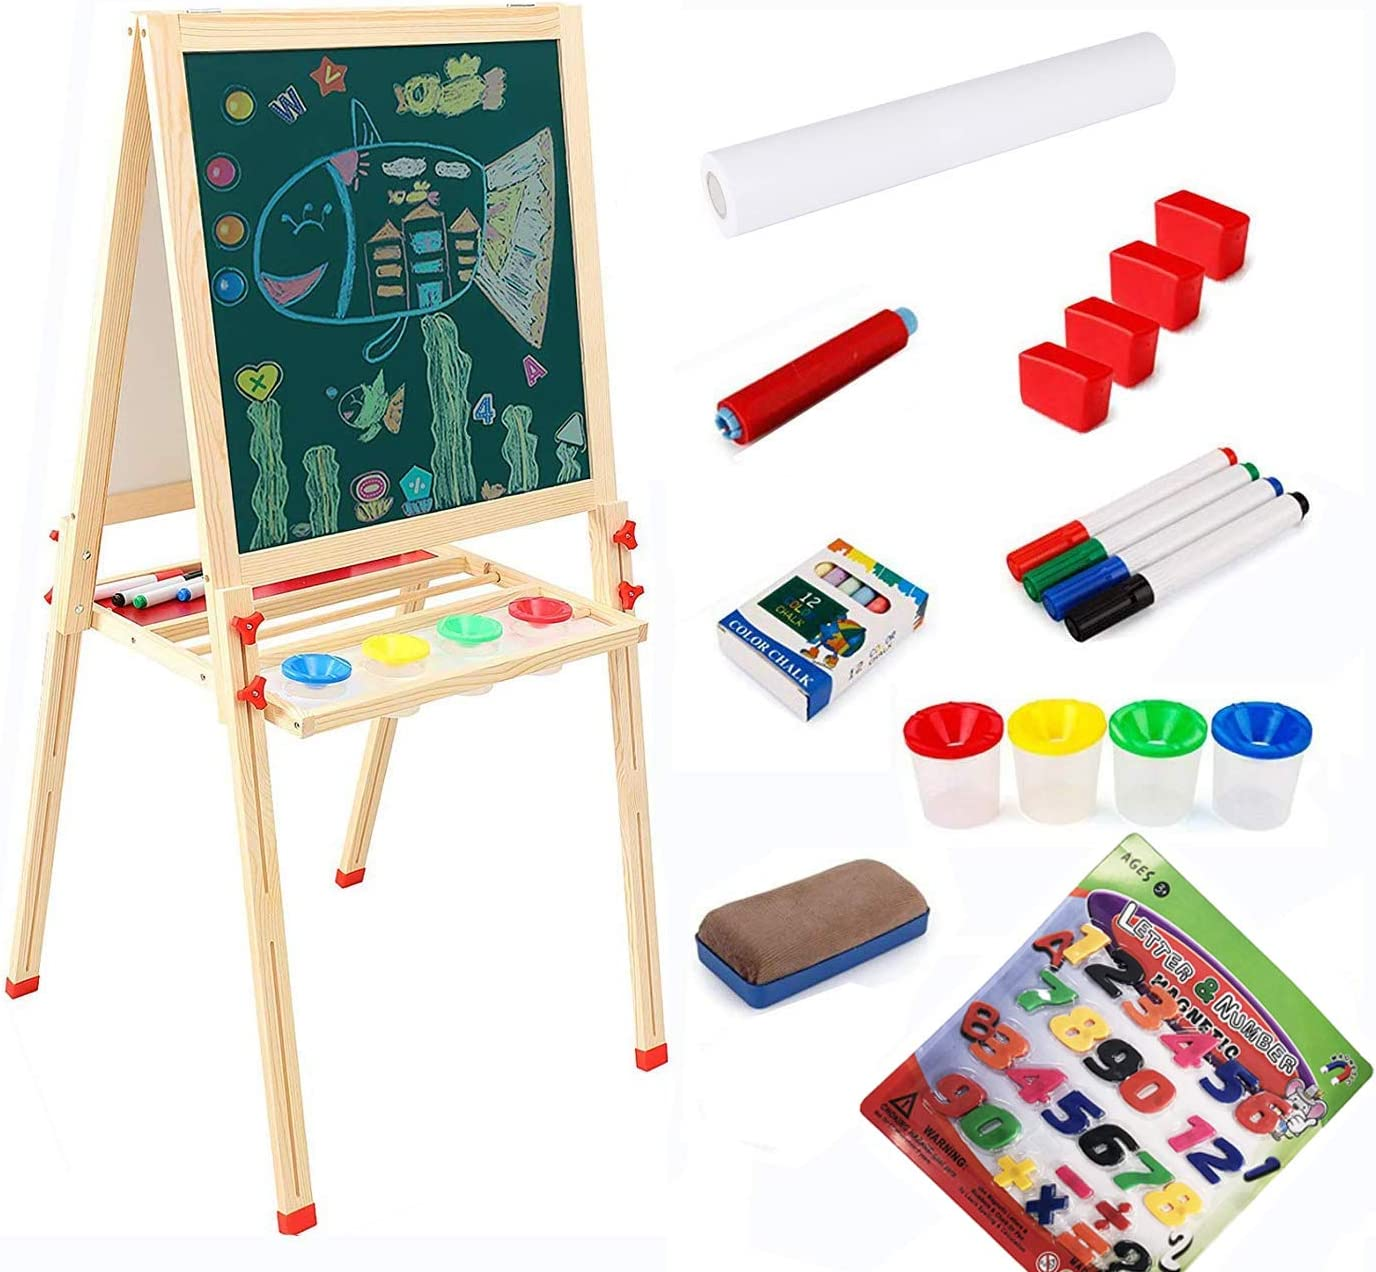 LINAZI Kids Wooden Art Easel,Chalk Board & Dry Erase Board,Double Sided Magnetic Easel with Paper roll,Gift for Kids,Height Adjustable Easel for Kids(L=54